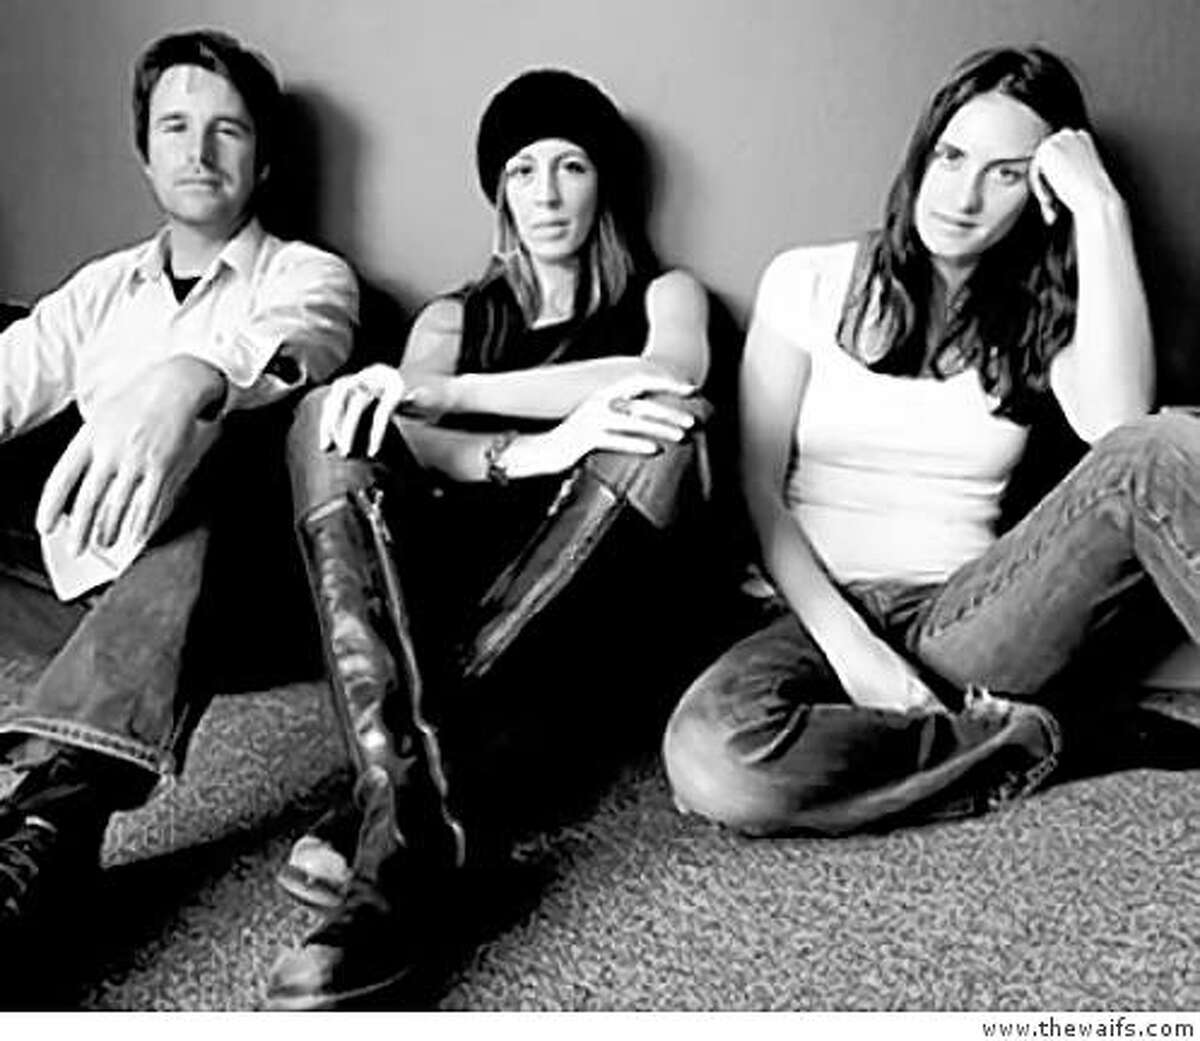 The Waifs play the Great American Music Hall on Saturday and Sunday, Aug. 23-24.